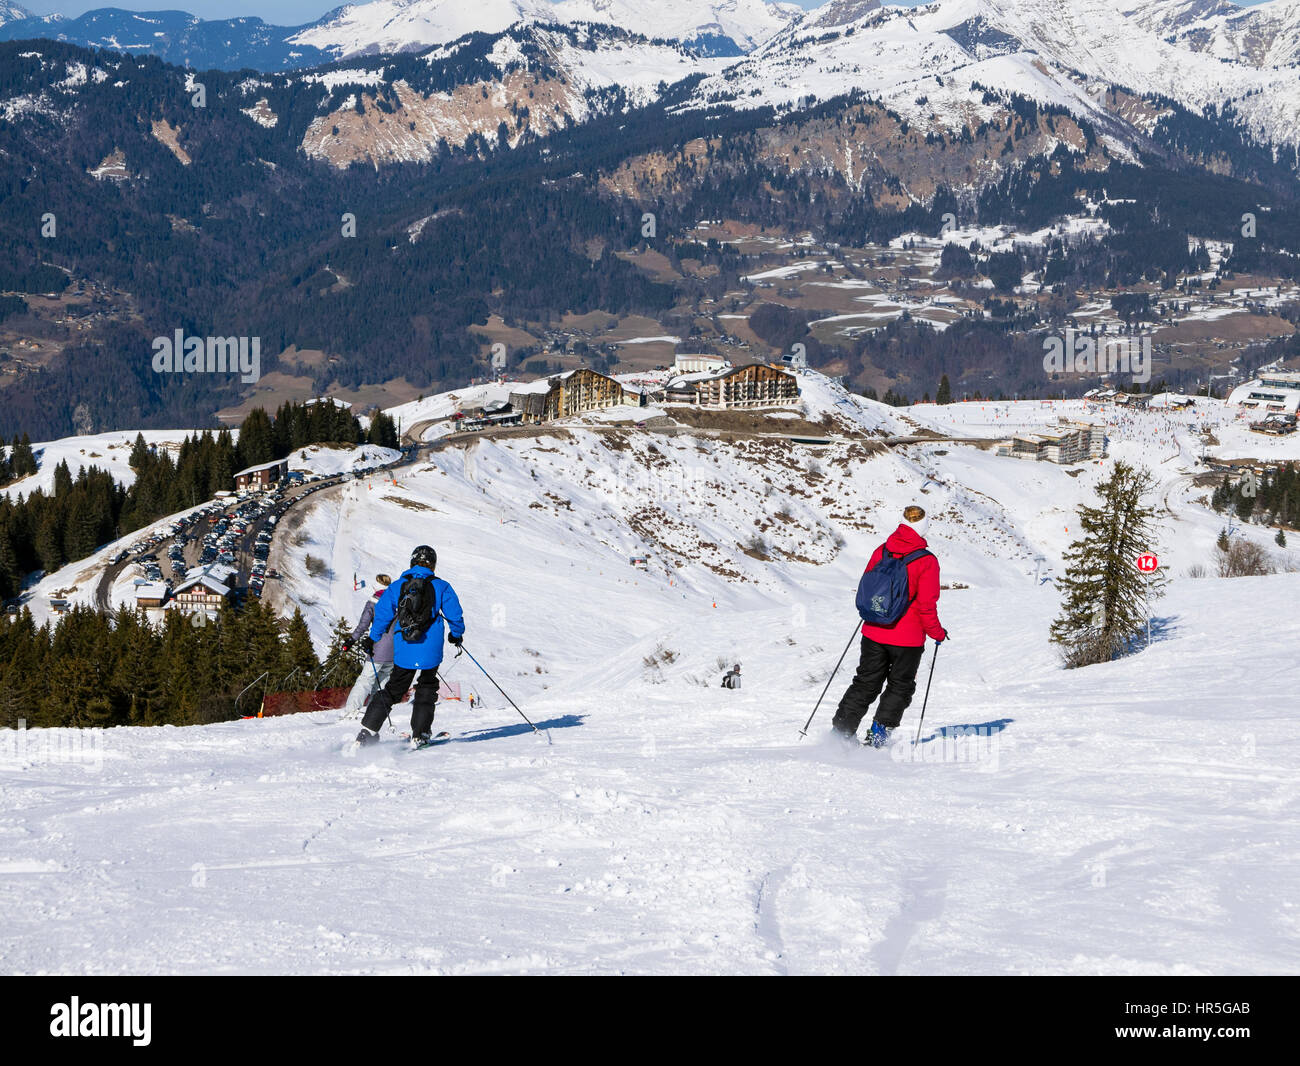 Skiers skiing on red run Marmotte in Grand Massif ski area of French Alps above Samoens, Haute Savoie, Rhone-Alpes, - Stock Image